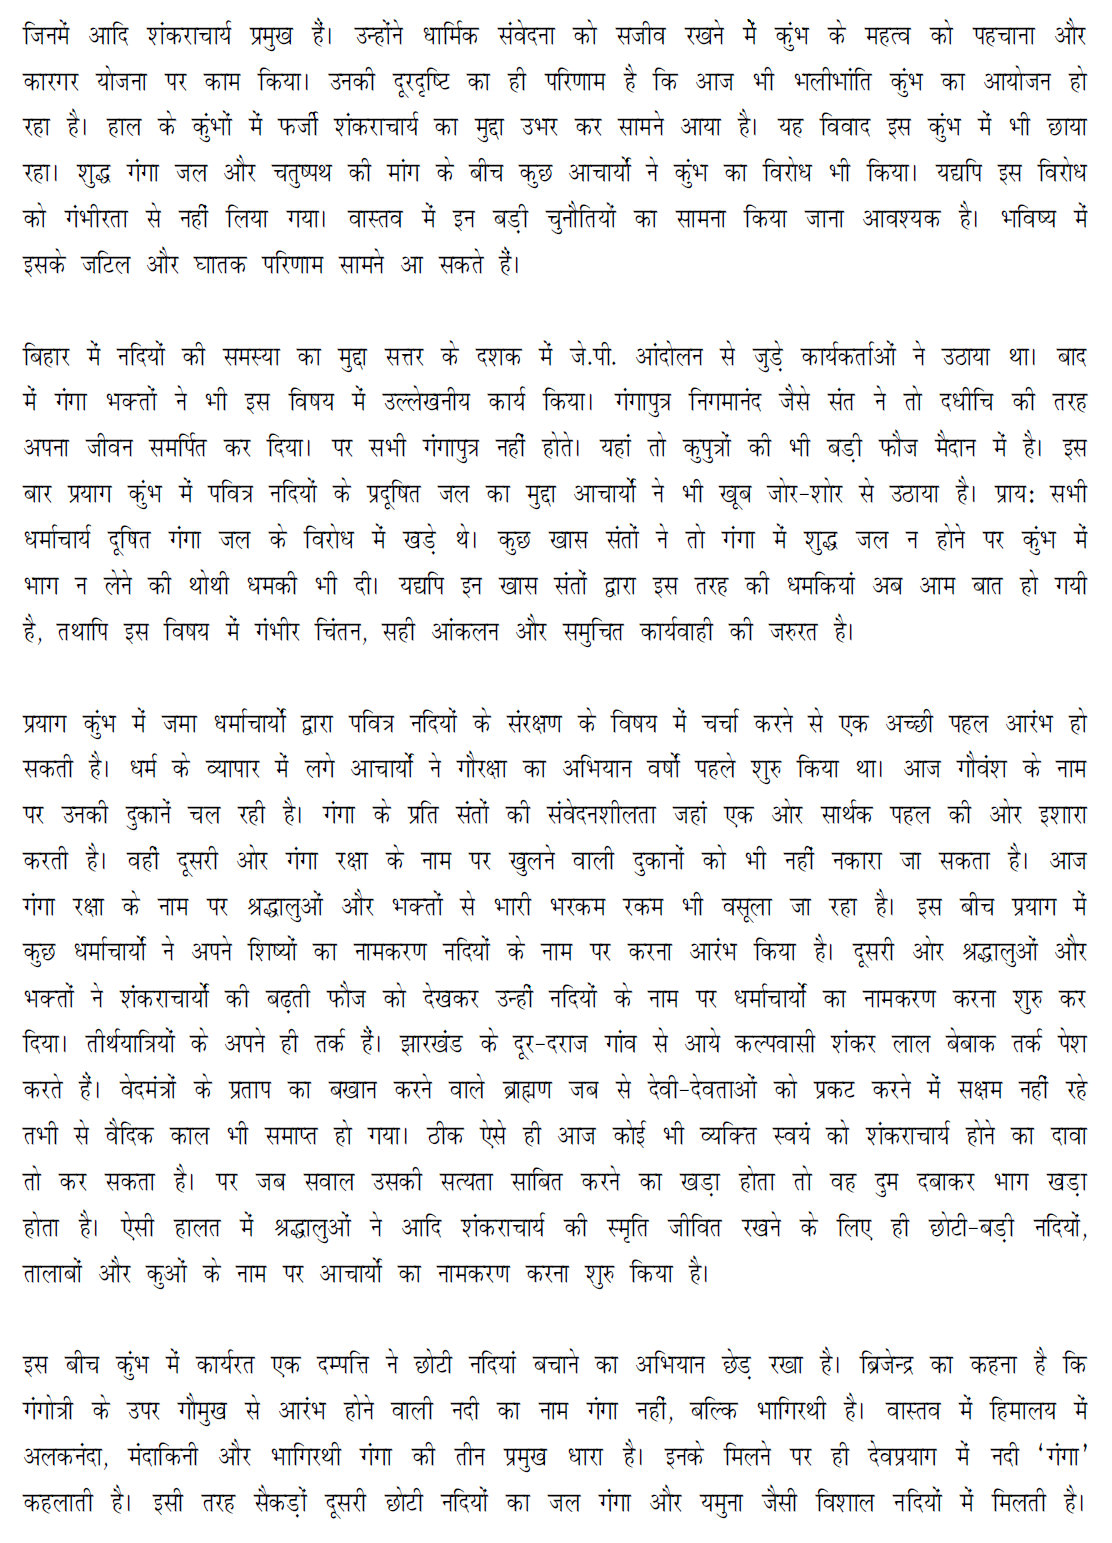 ganga kaushal kishore article in hindi 2 article in hindi 3